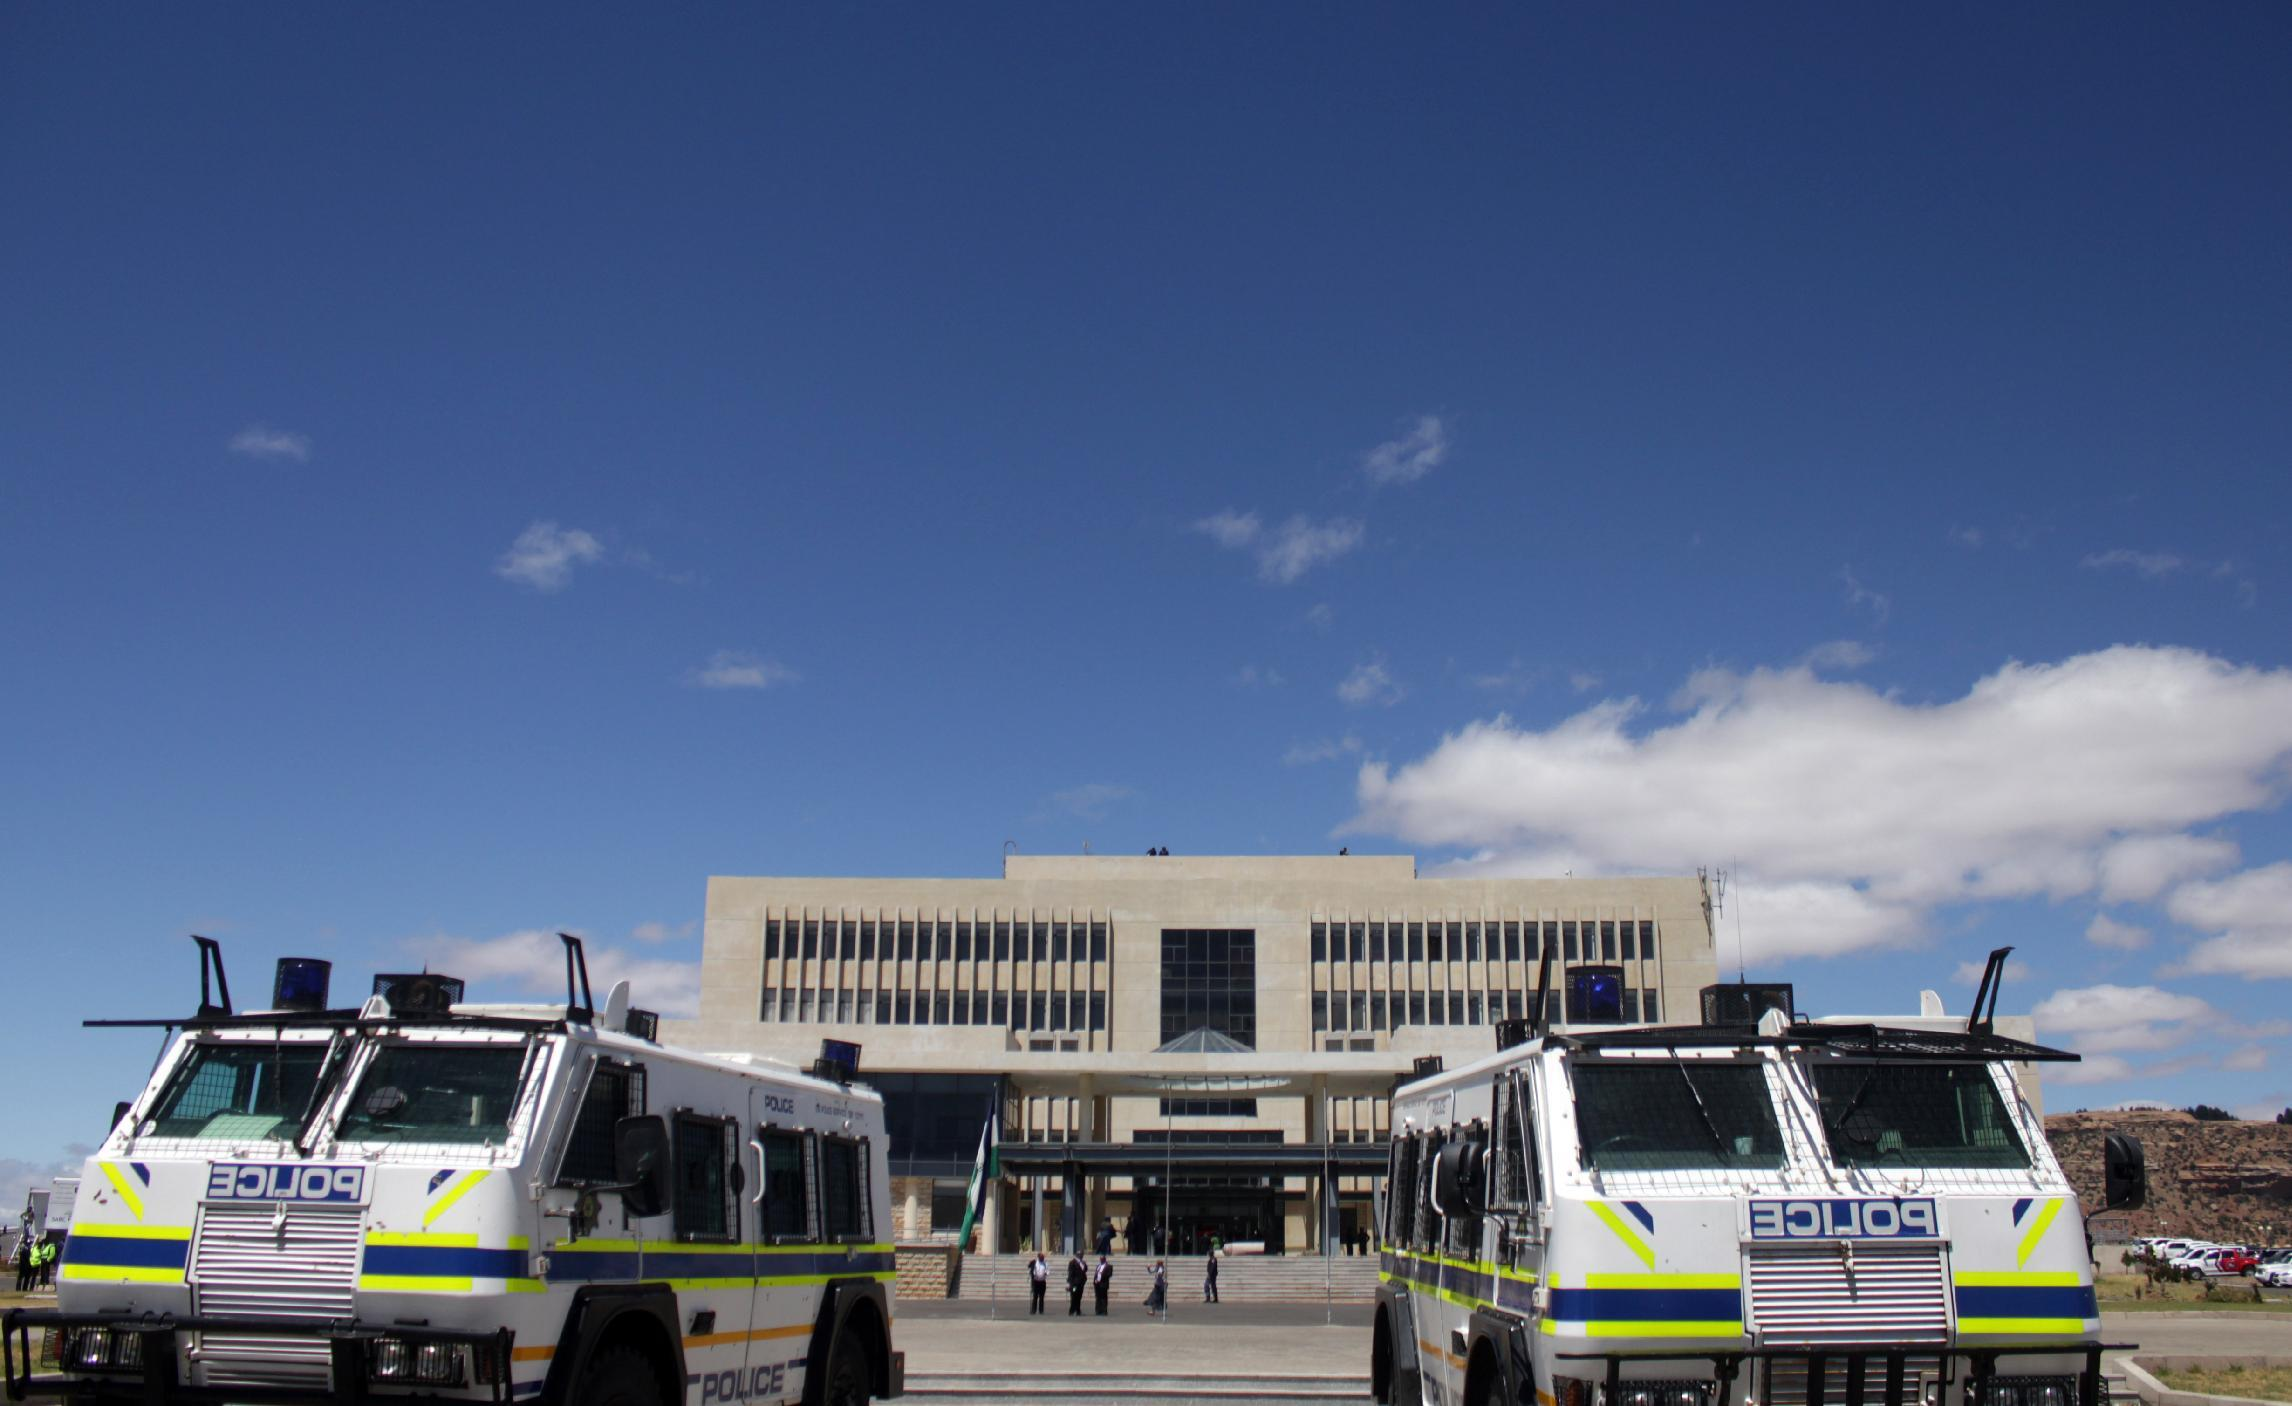 African Police trucks sit in front of the parliament building in Lesotho's capital Maseru on October 17, 2014 (AFP Photo/Hlompho Letsielo)